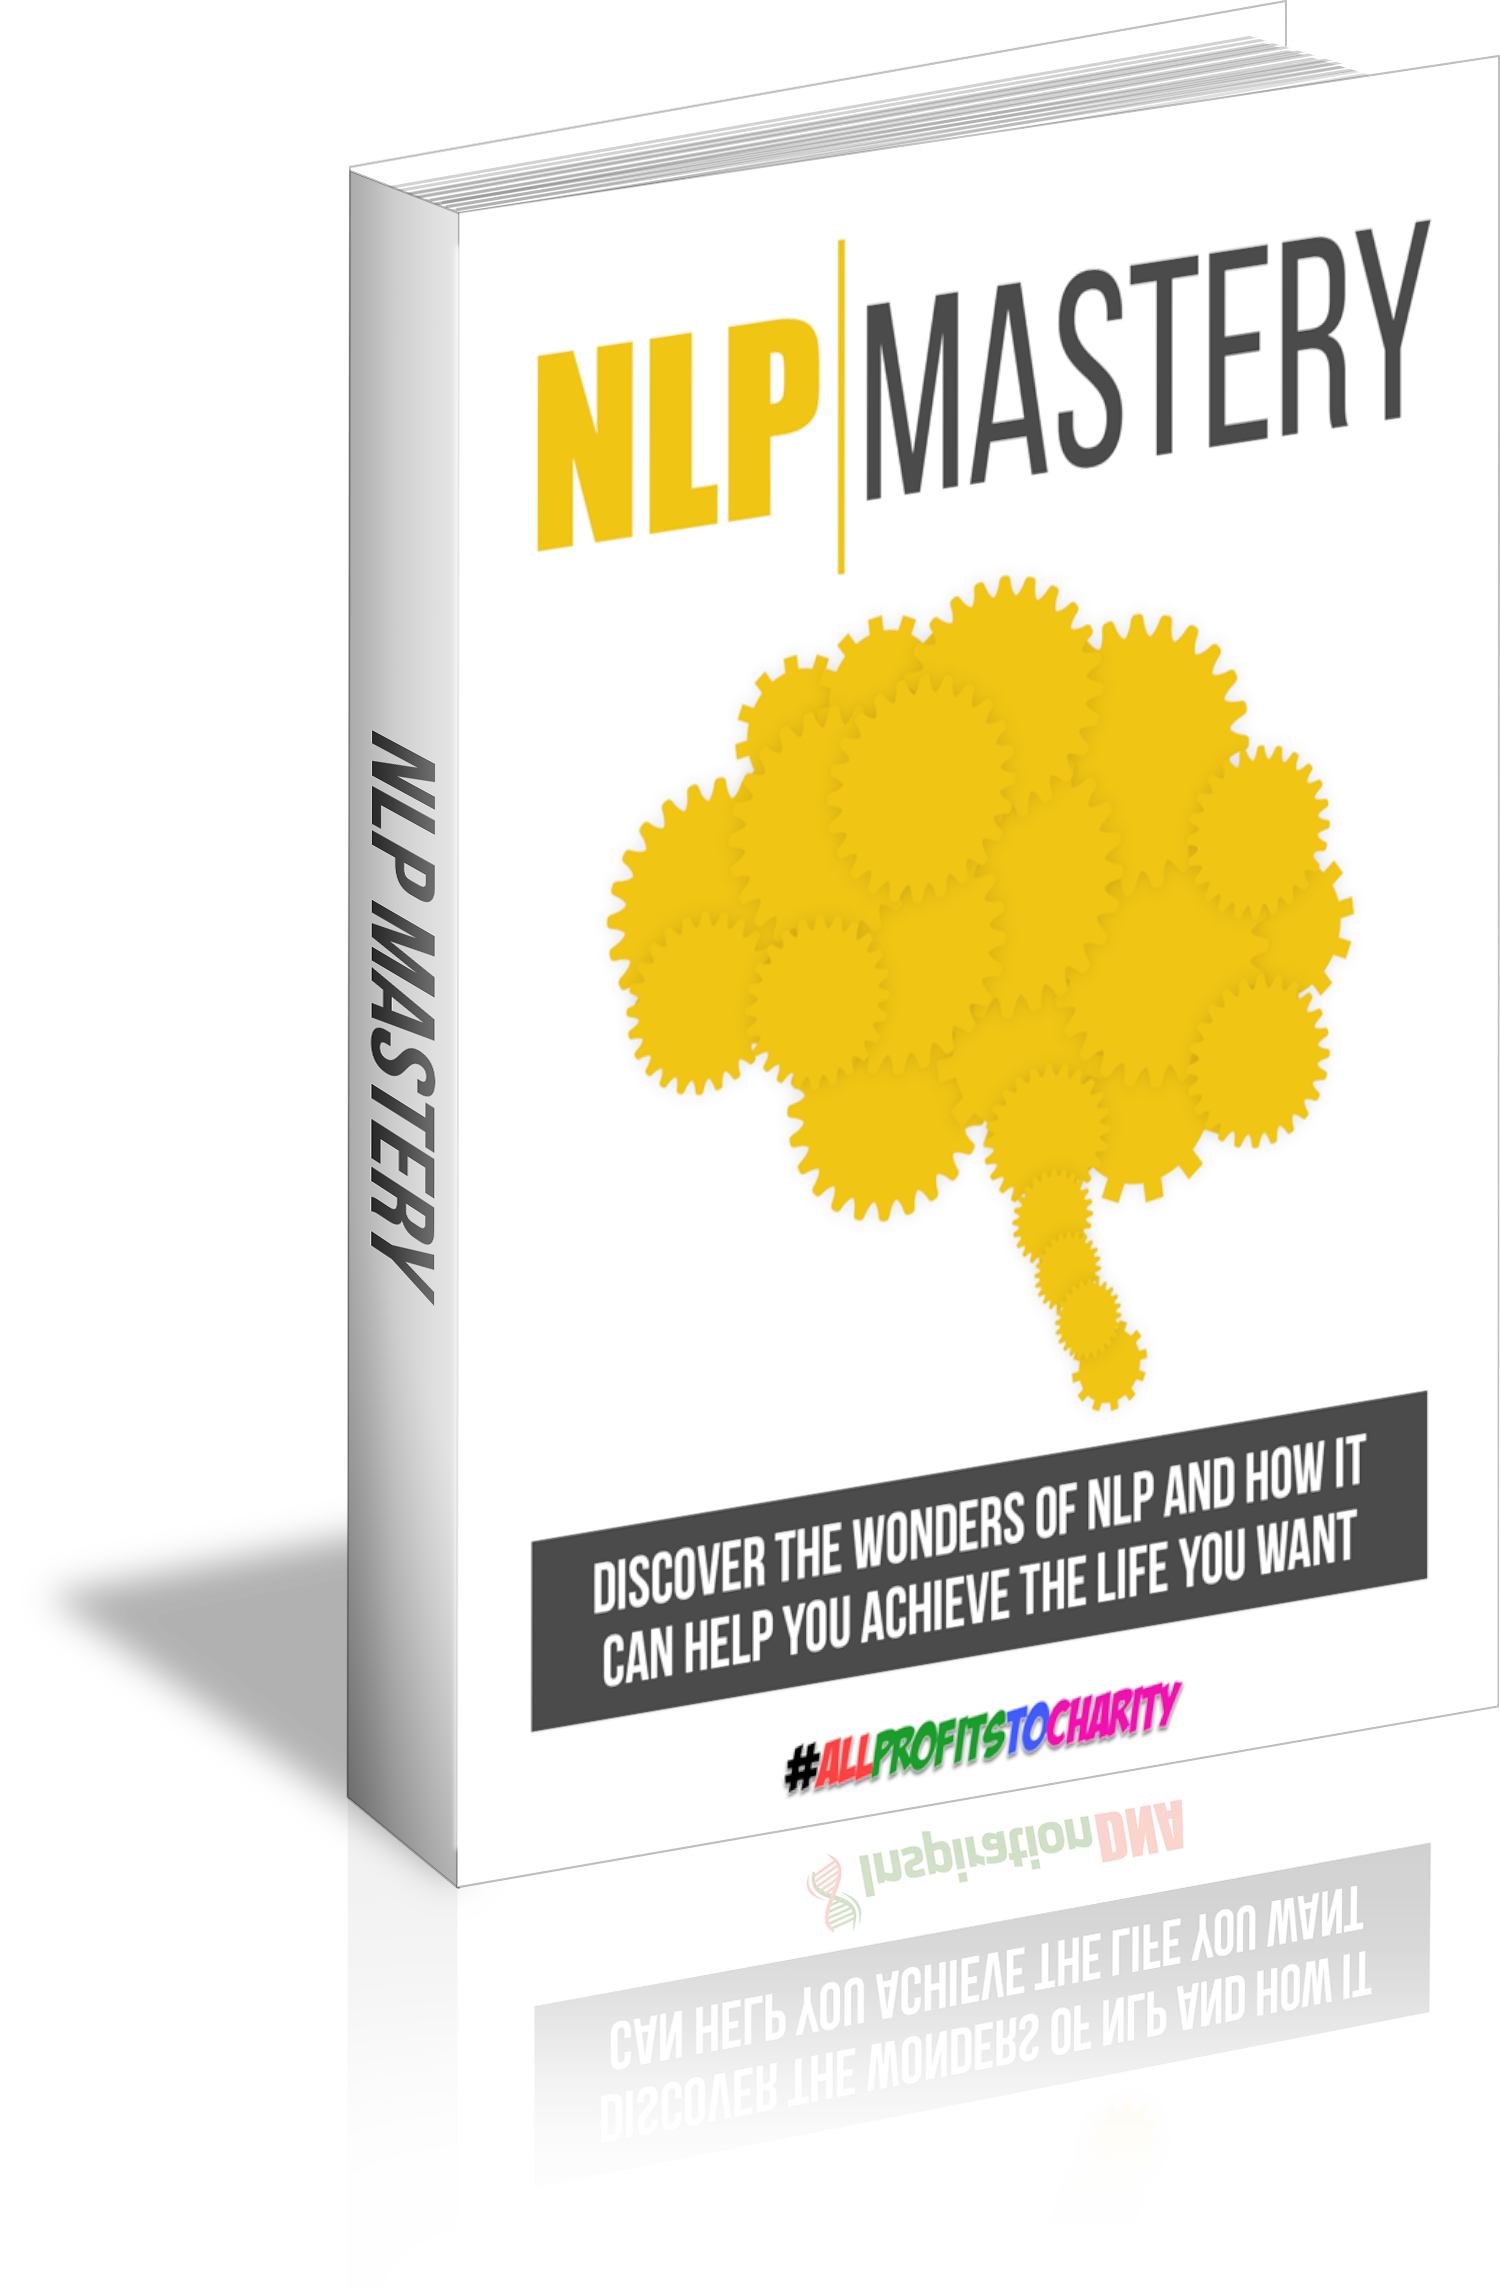 NLP Mastery cover